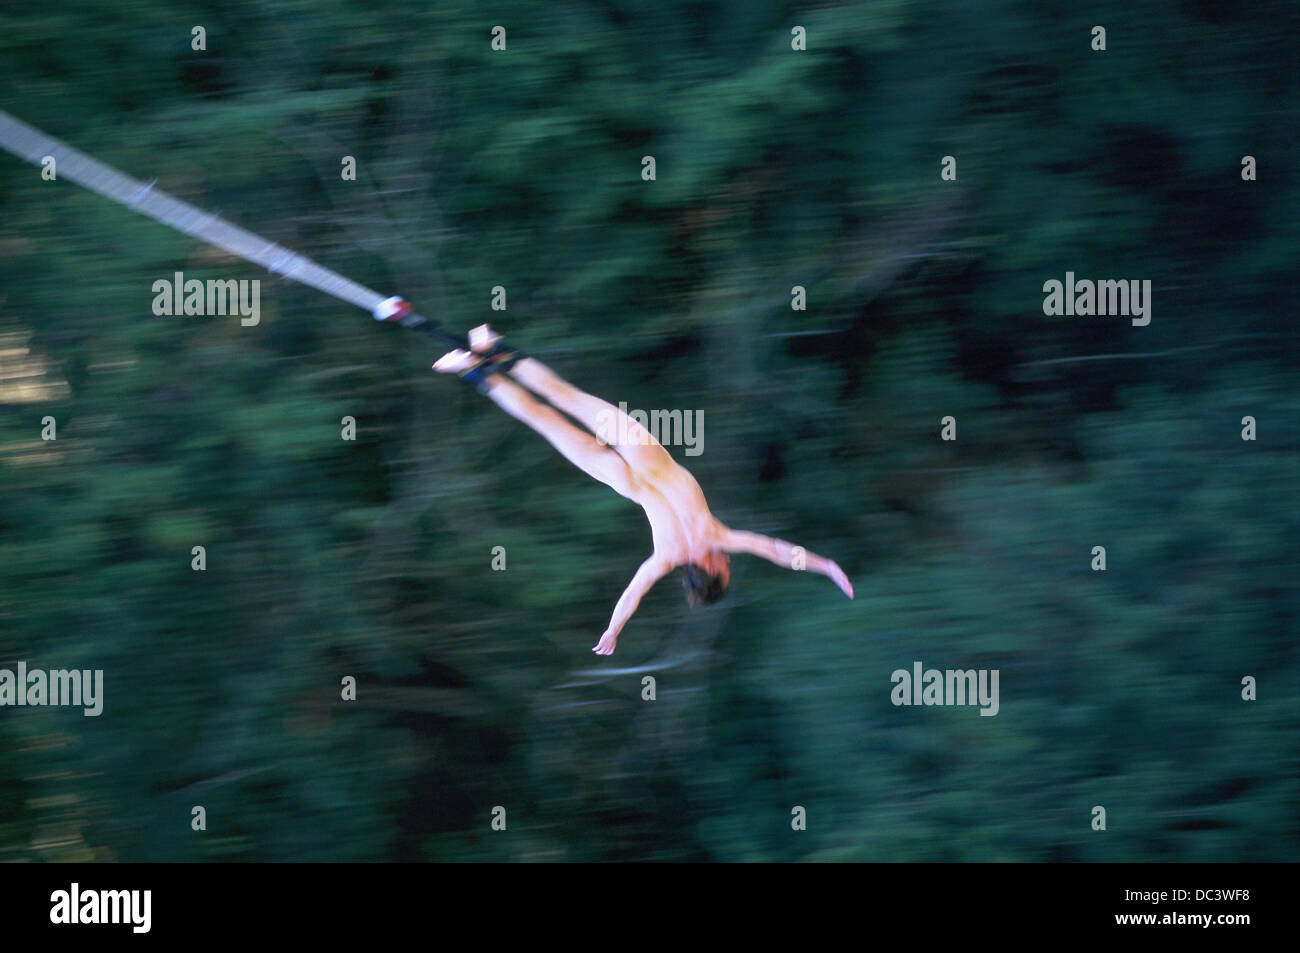 Nude Bungie Jumping 93